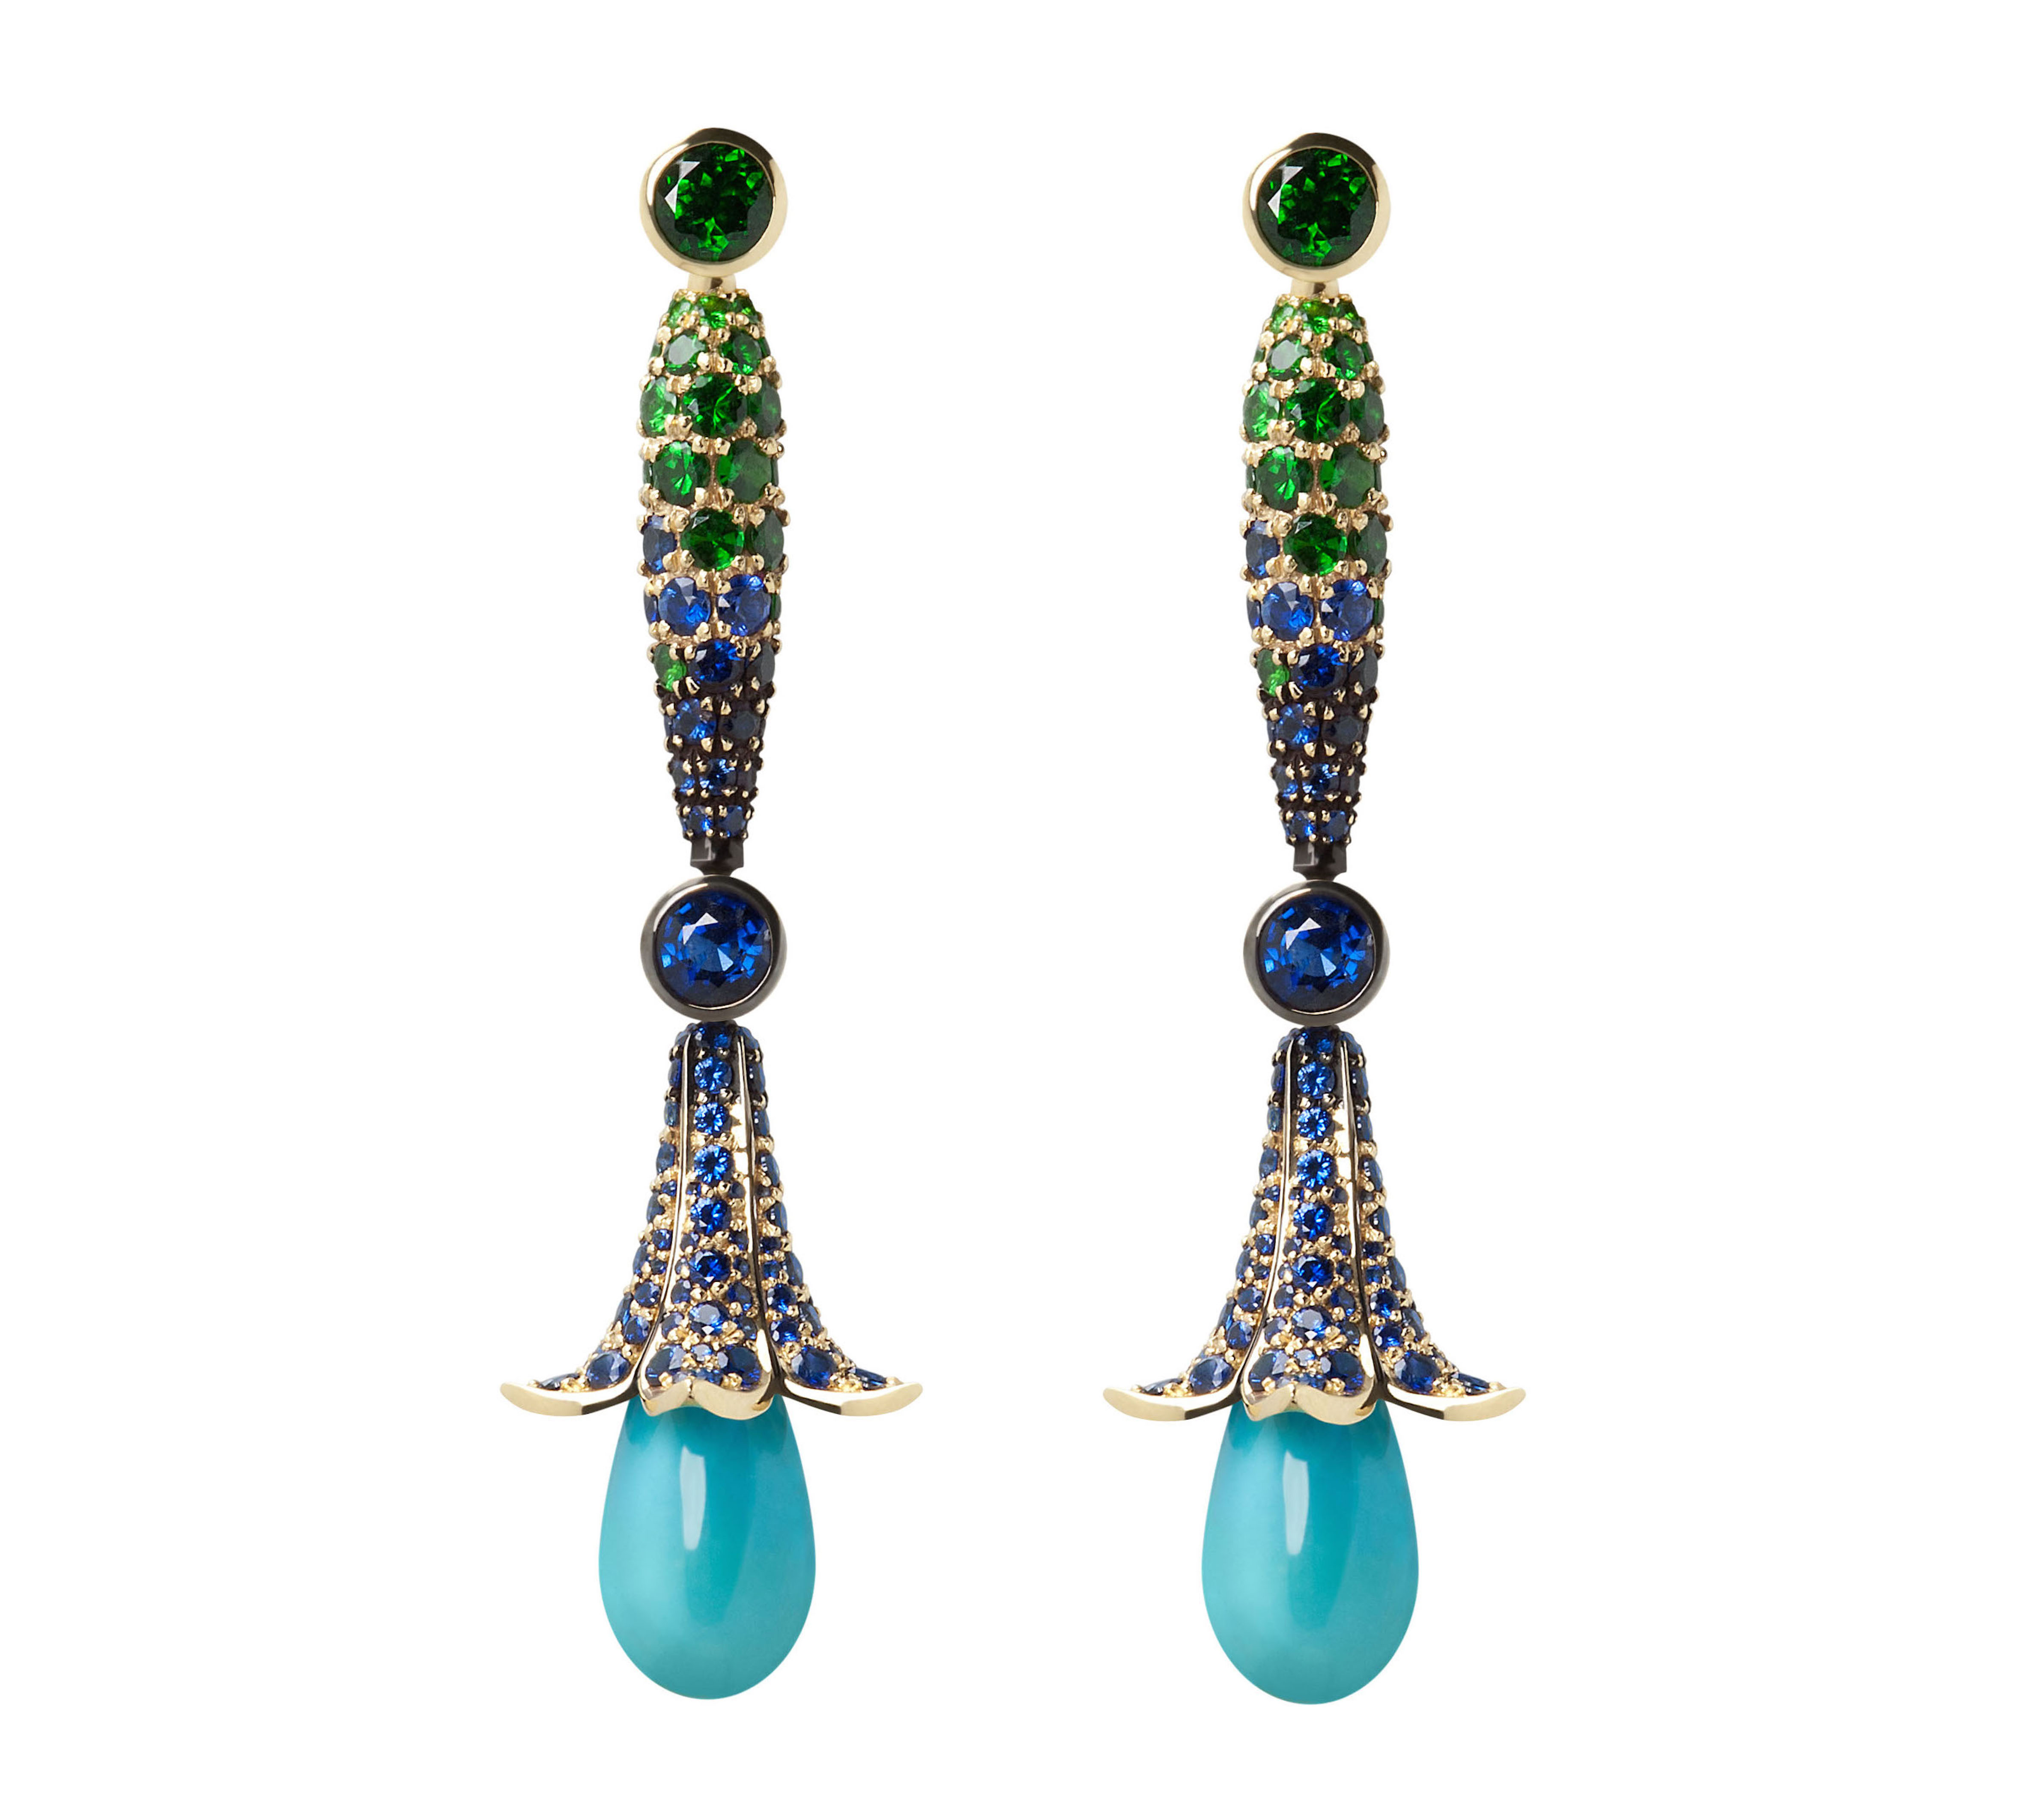 Turquoise Flower Drop earrings: Turquoise, sapphire, tsavorite, 18ct yellow gold